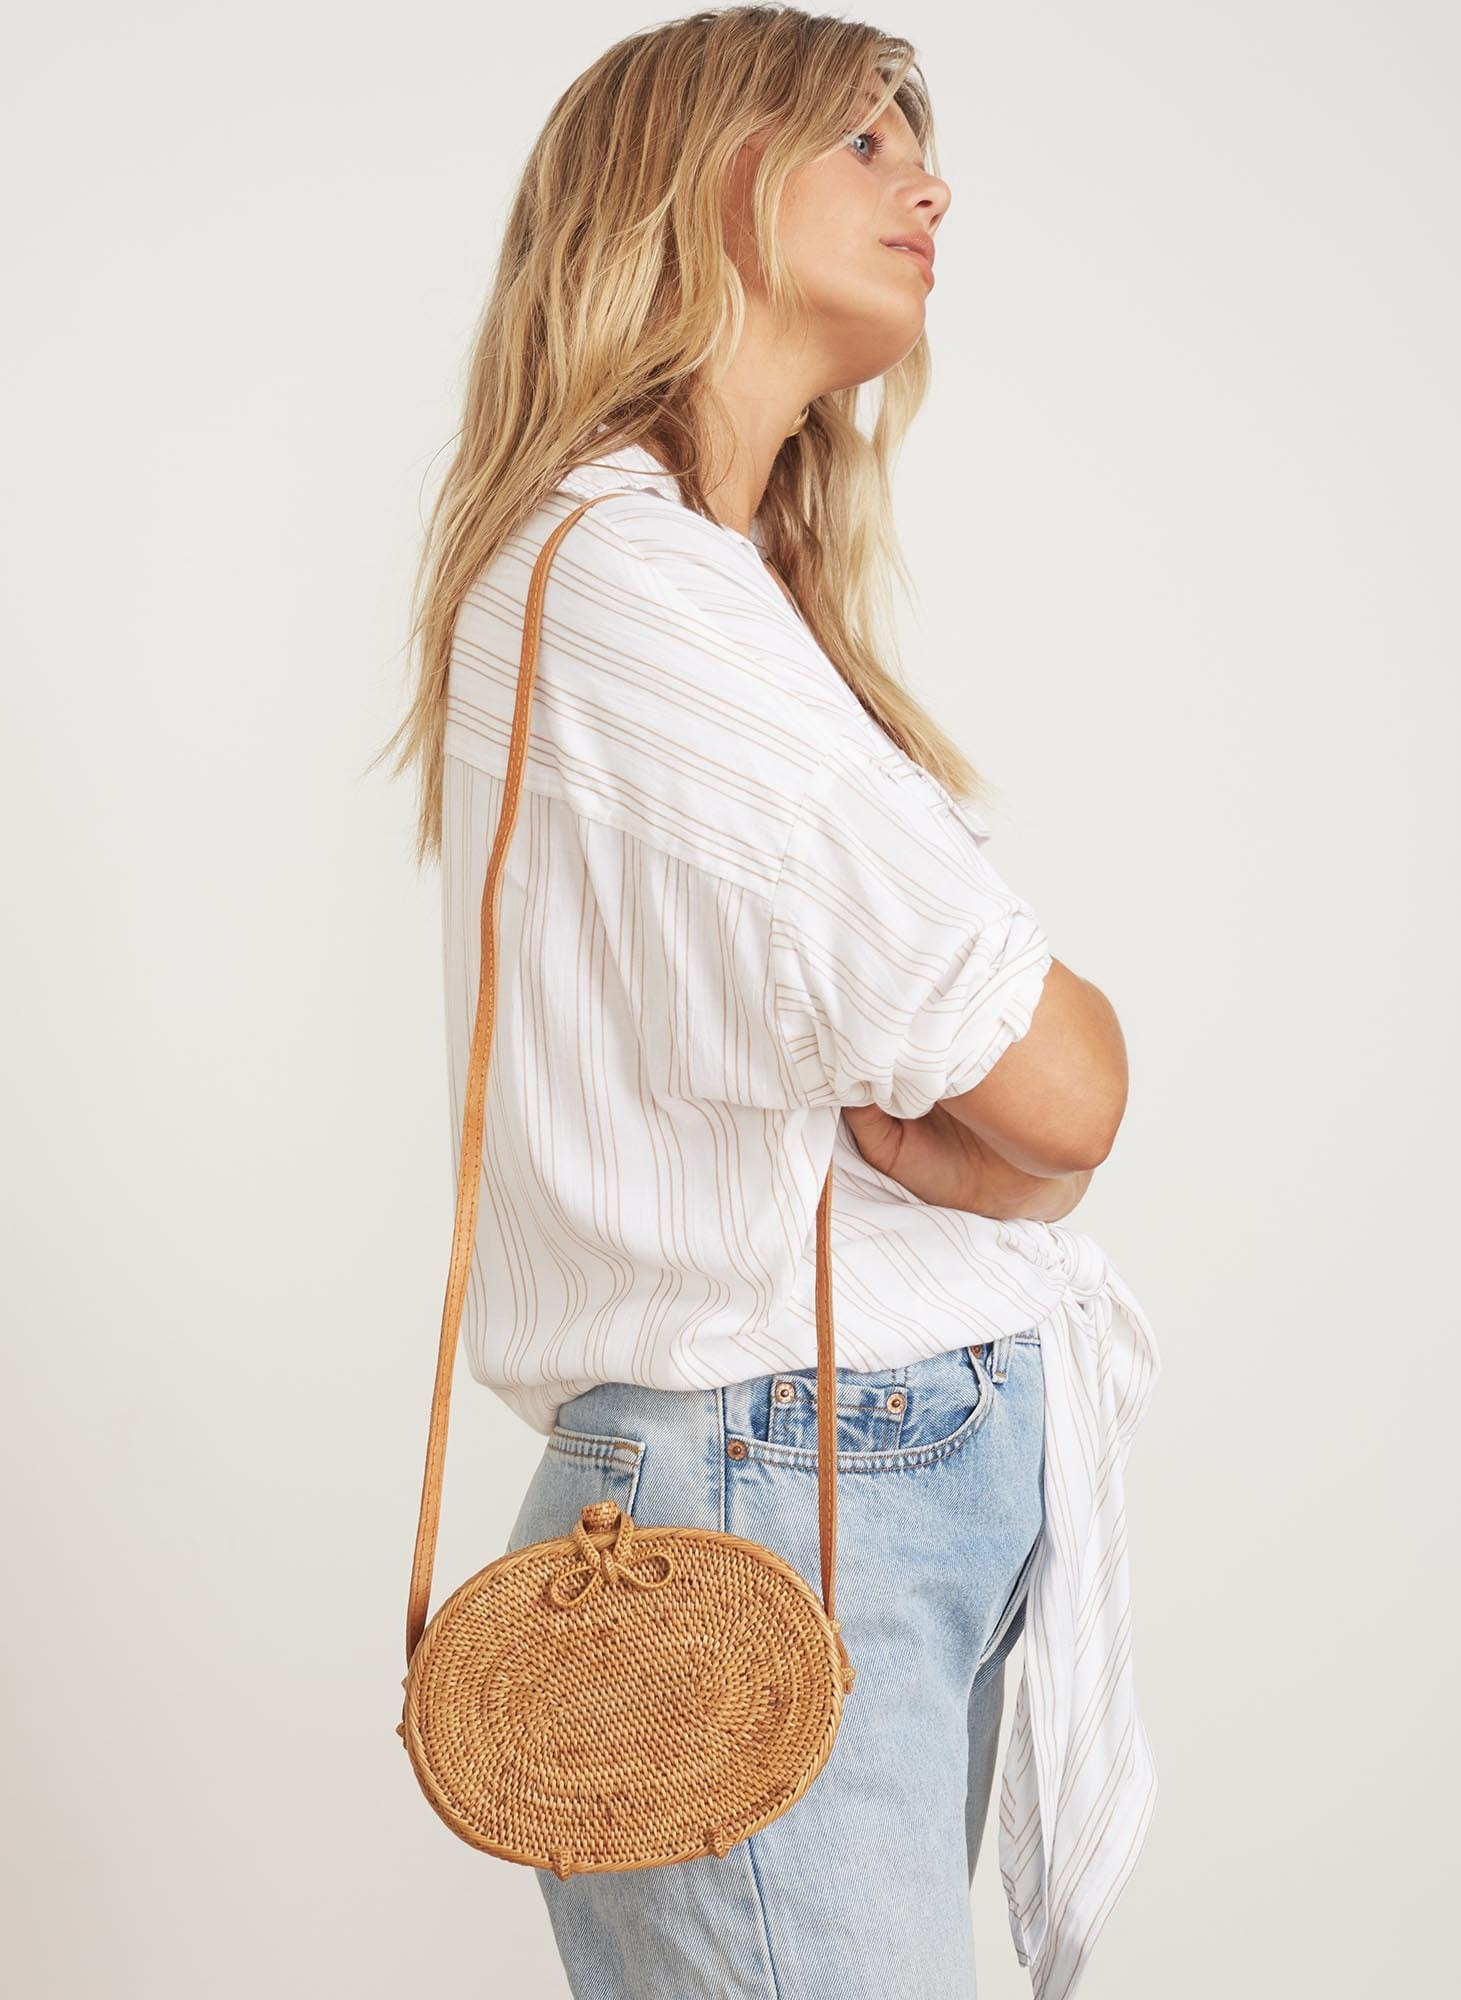 NALA BAG - NATURAL & TAN